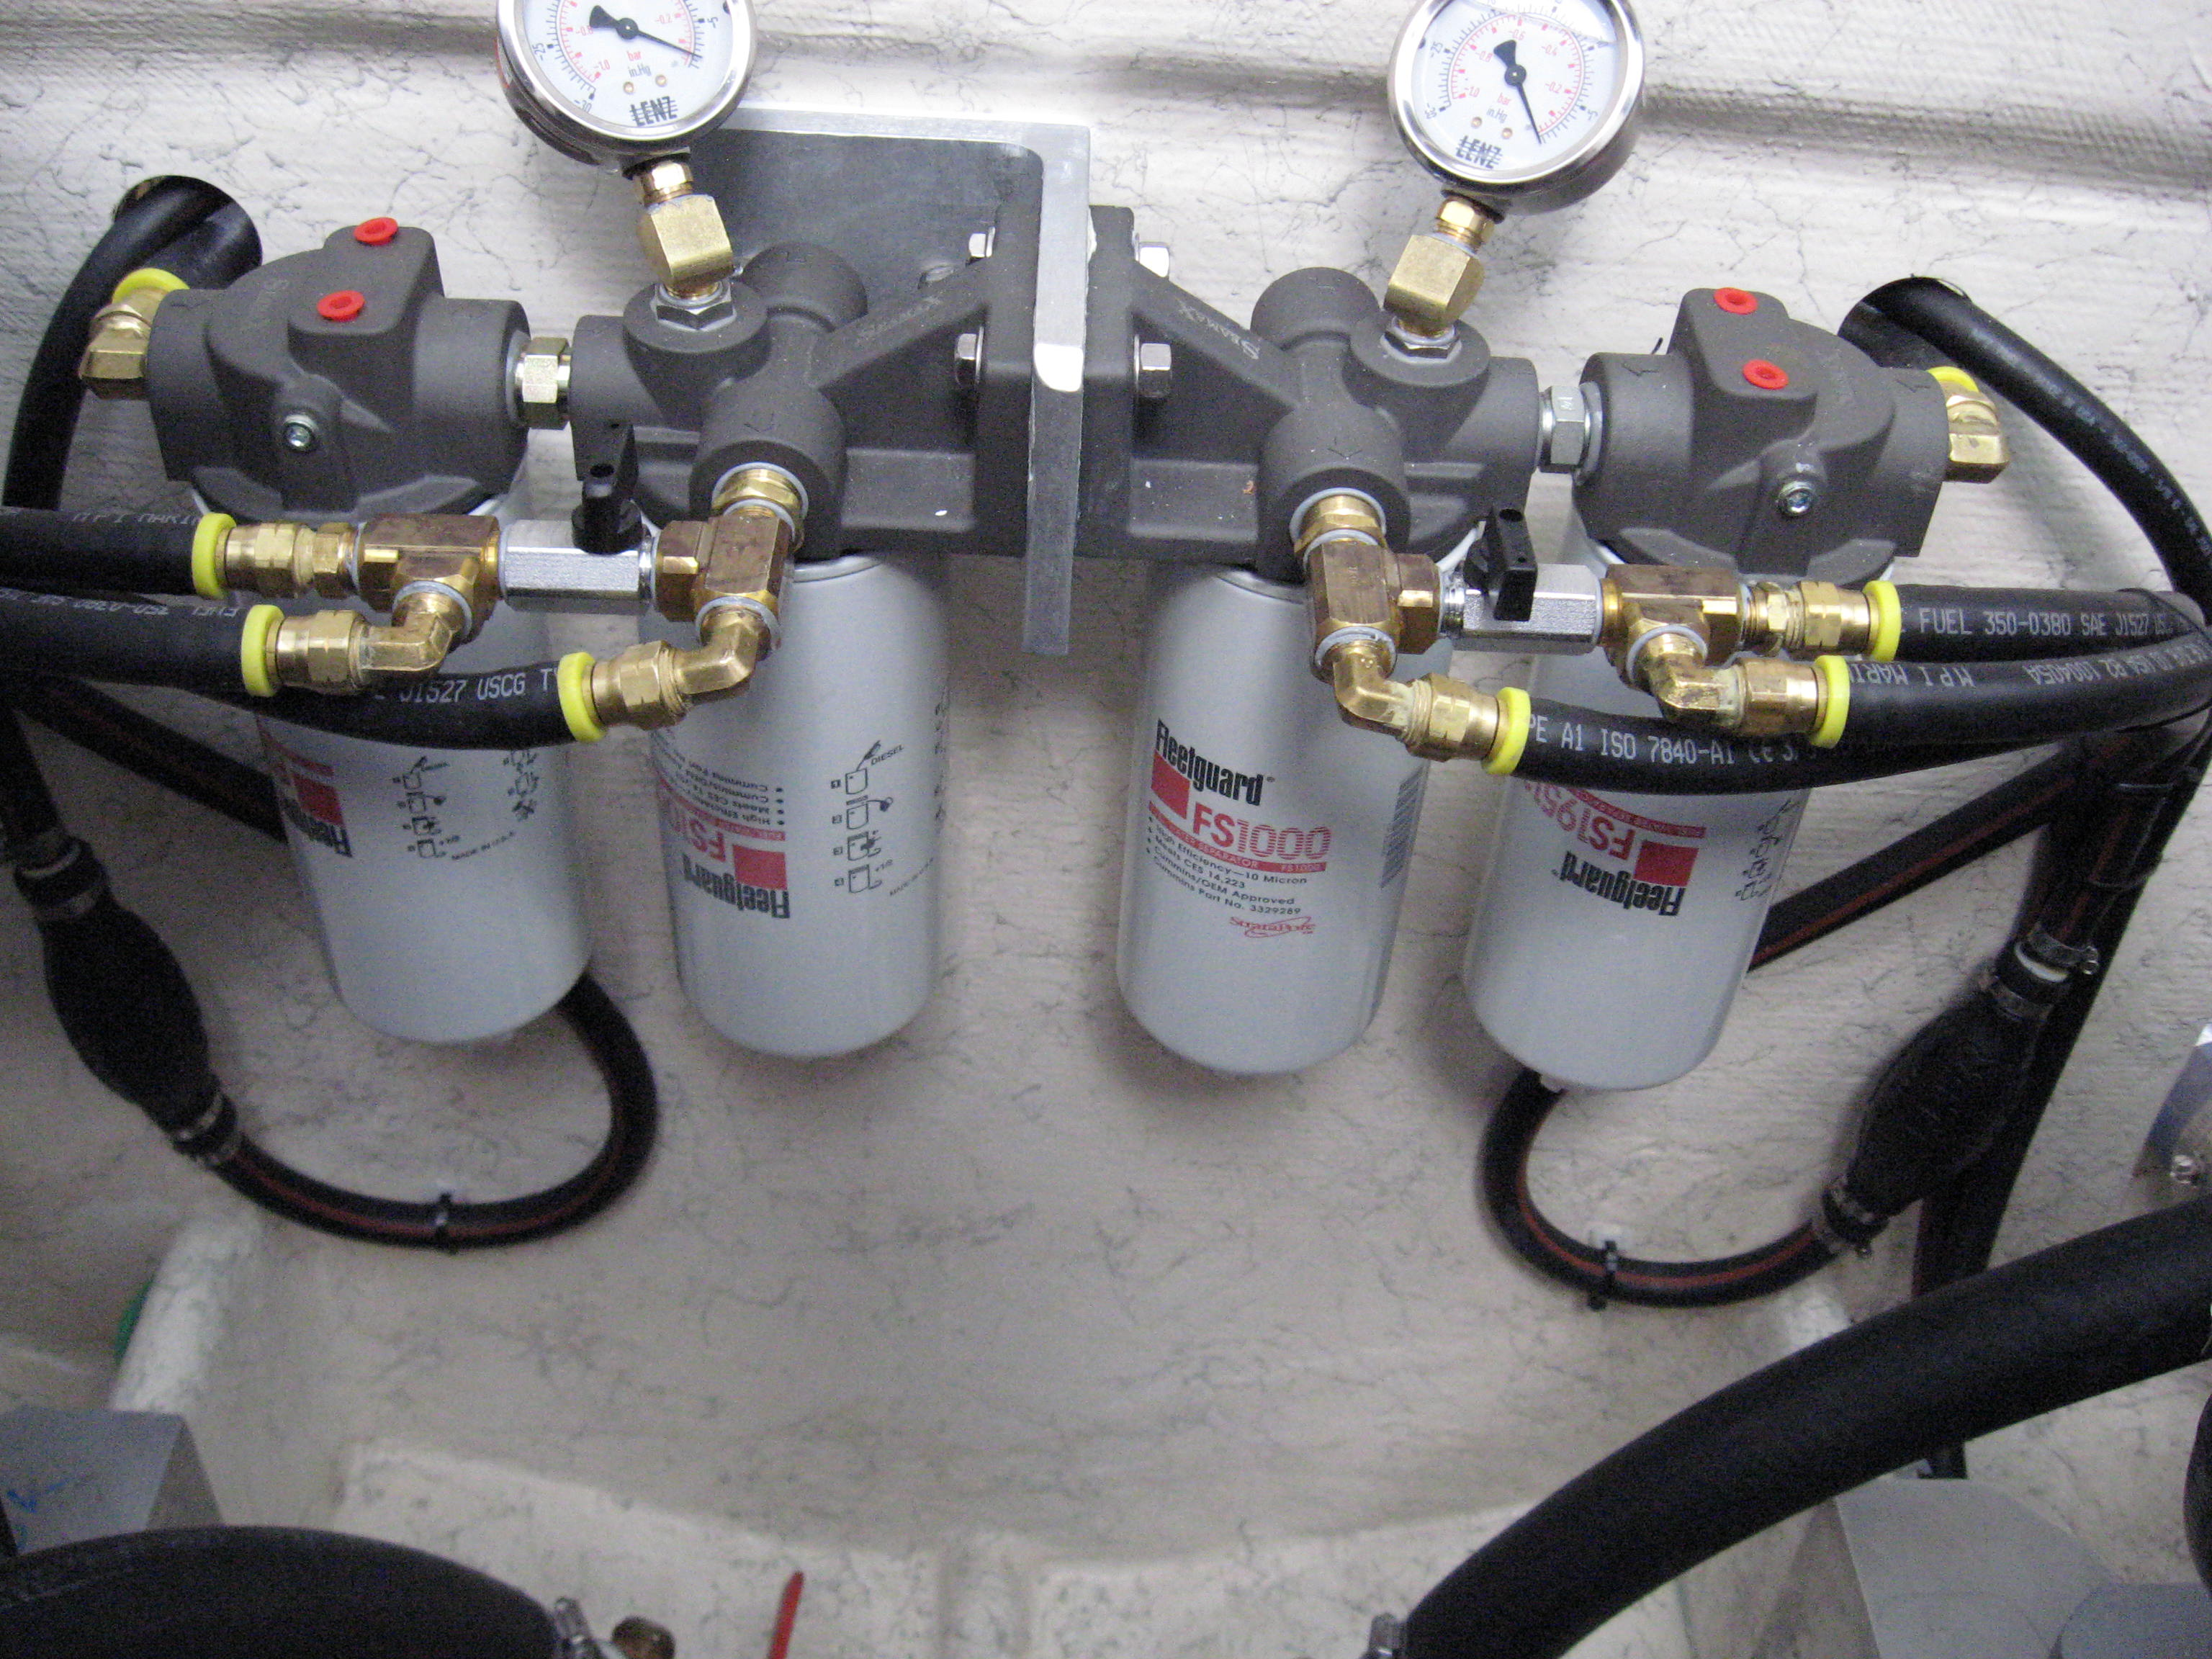 Our Multi-Stage FUELTRATION system with simple isolated priming